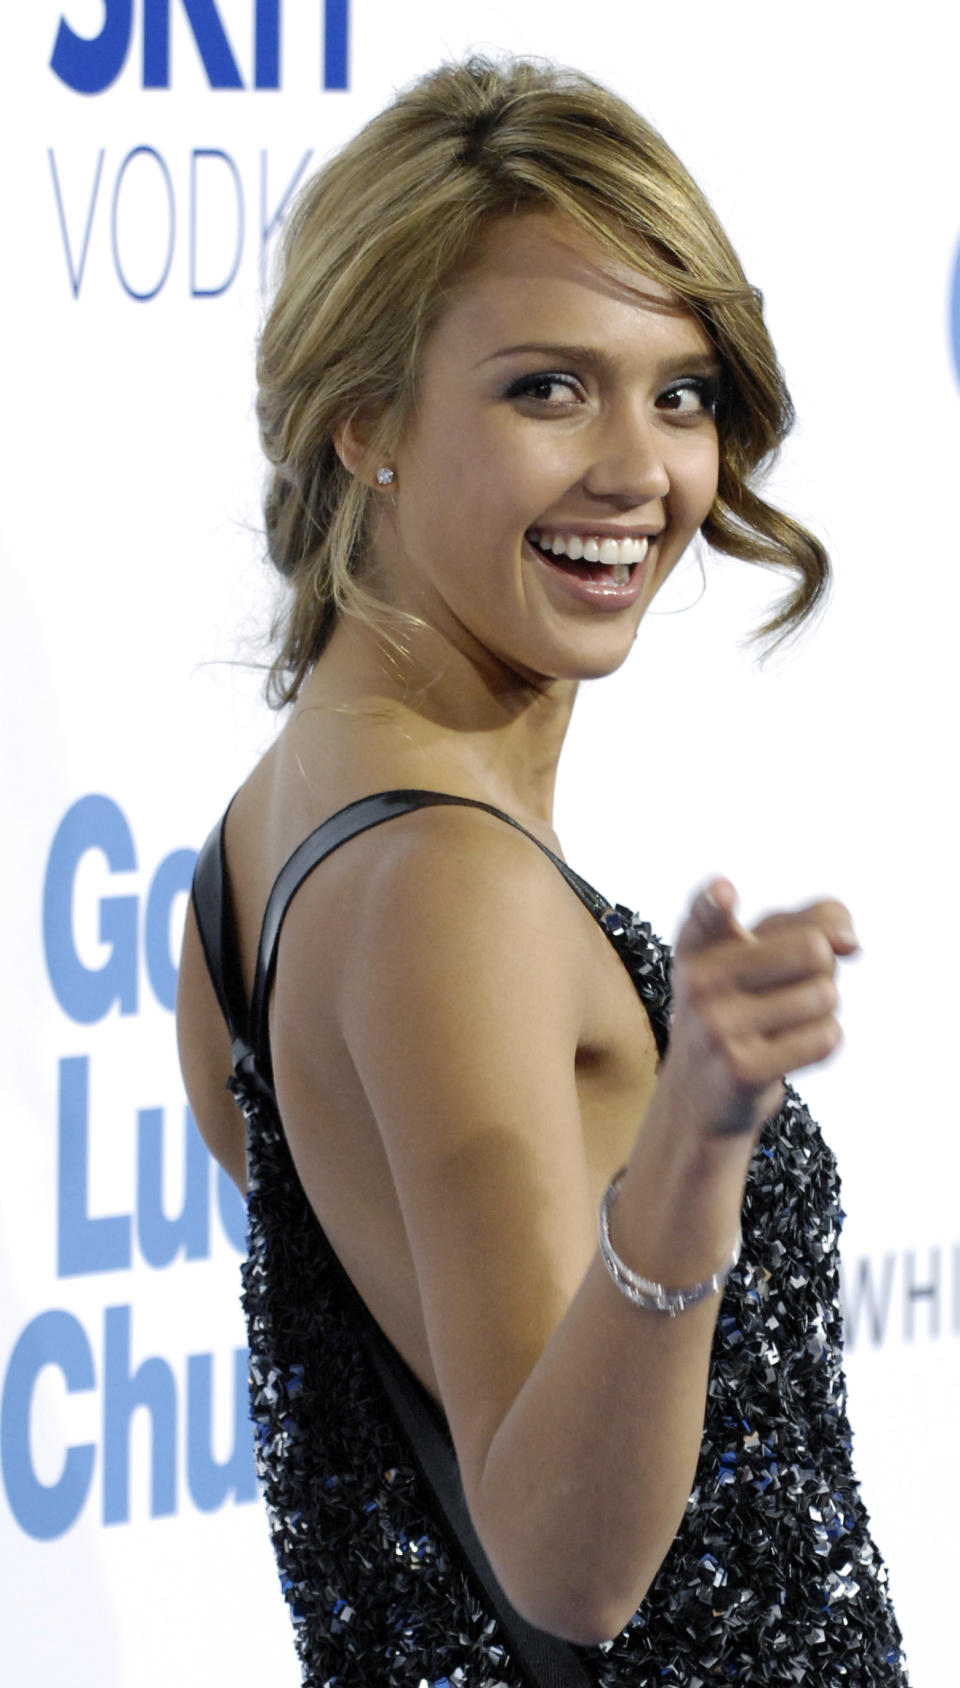 """Jessica Alba, a cast member in the film """"Good Luck Chuck,"""" turns back for photographers at the premiere of the film in Los Angeles, Wednesday, Sept. 19, 2007. (AP Photo/Chris Pizzello)"""